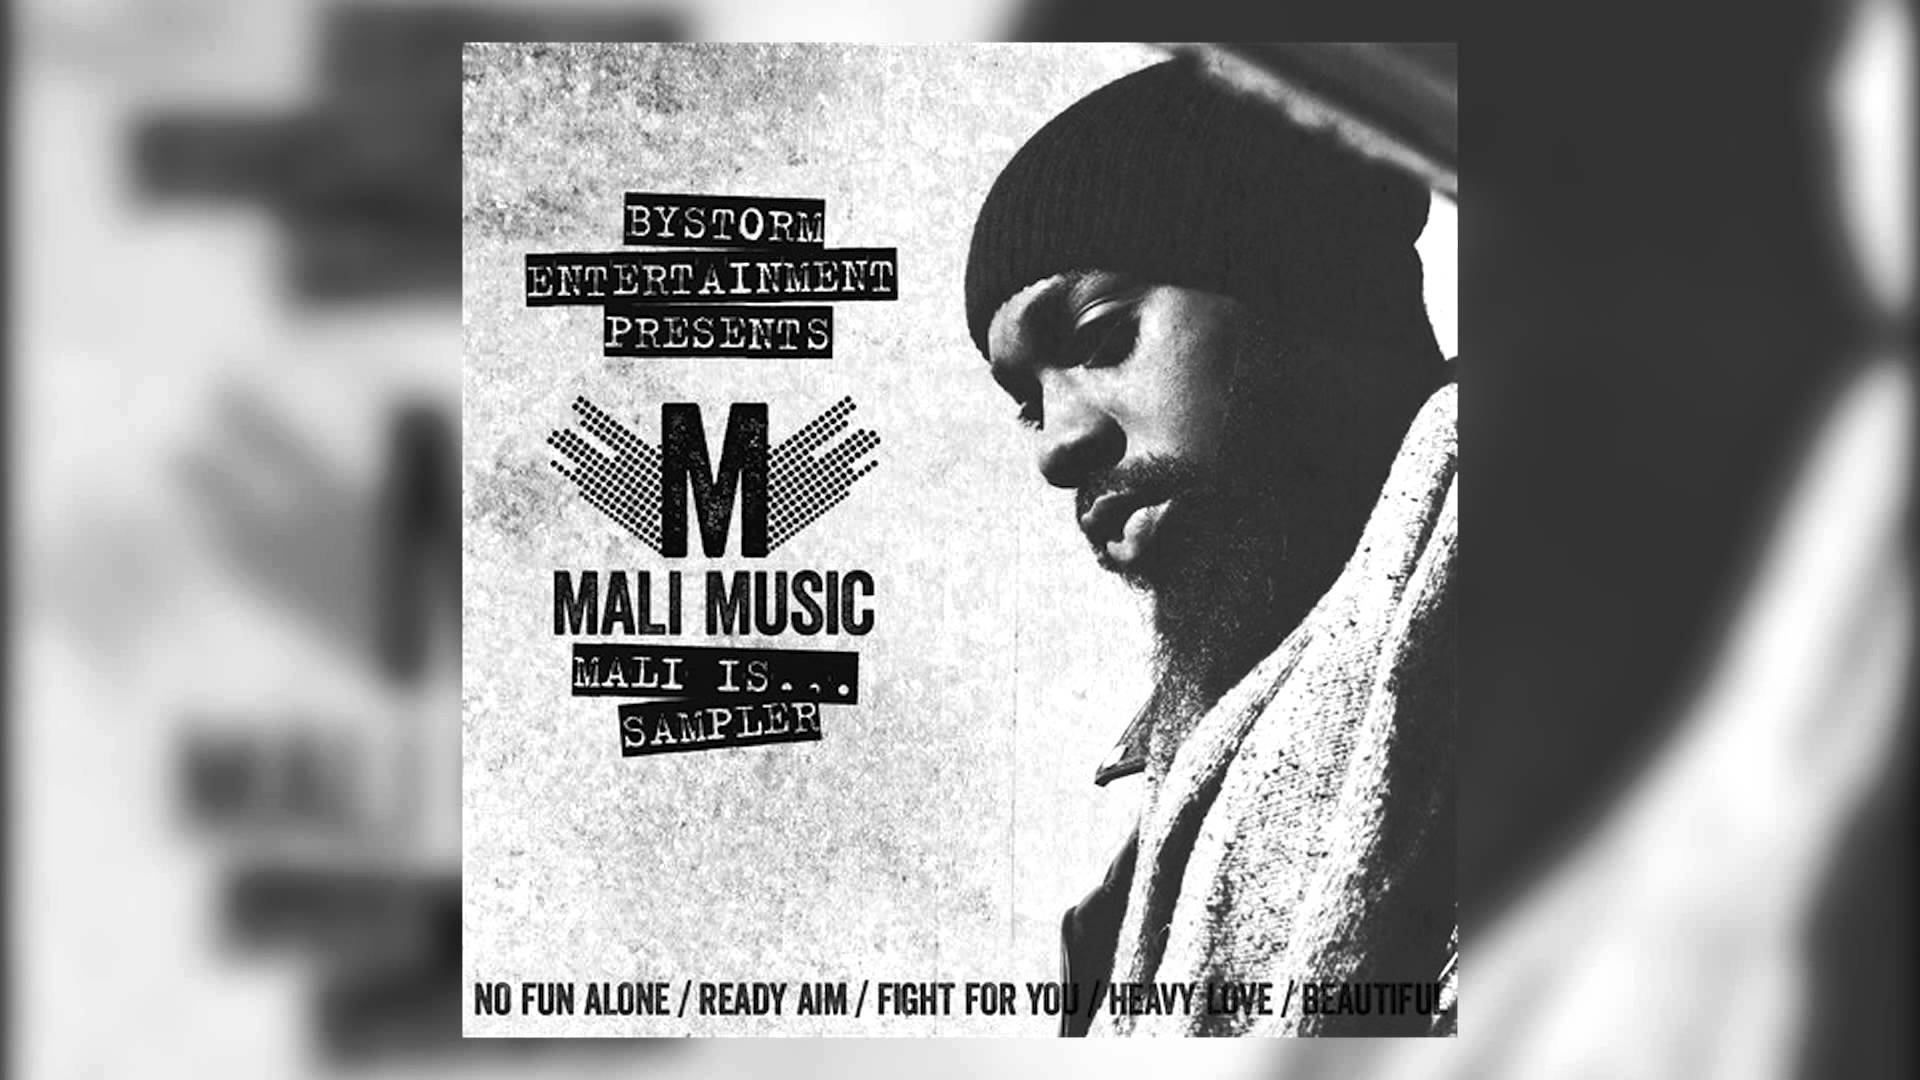 Songs: Mali Music – Beautiful, Fight For You, Heavy Love, No Fun Alone, and Ready Aim